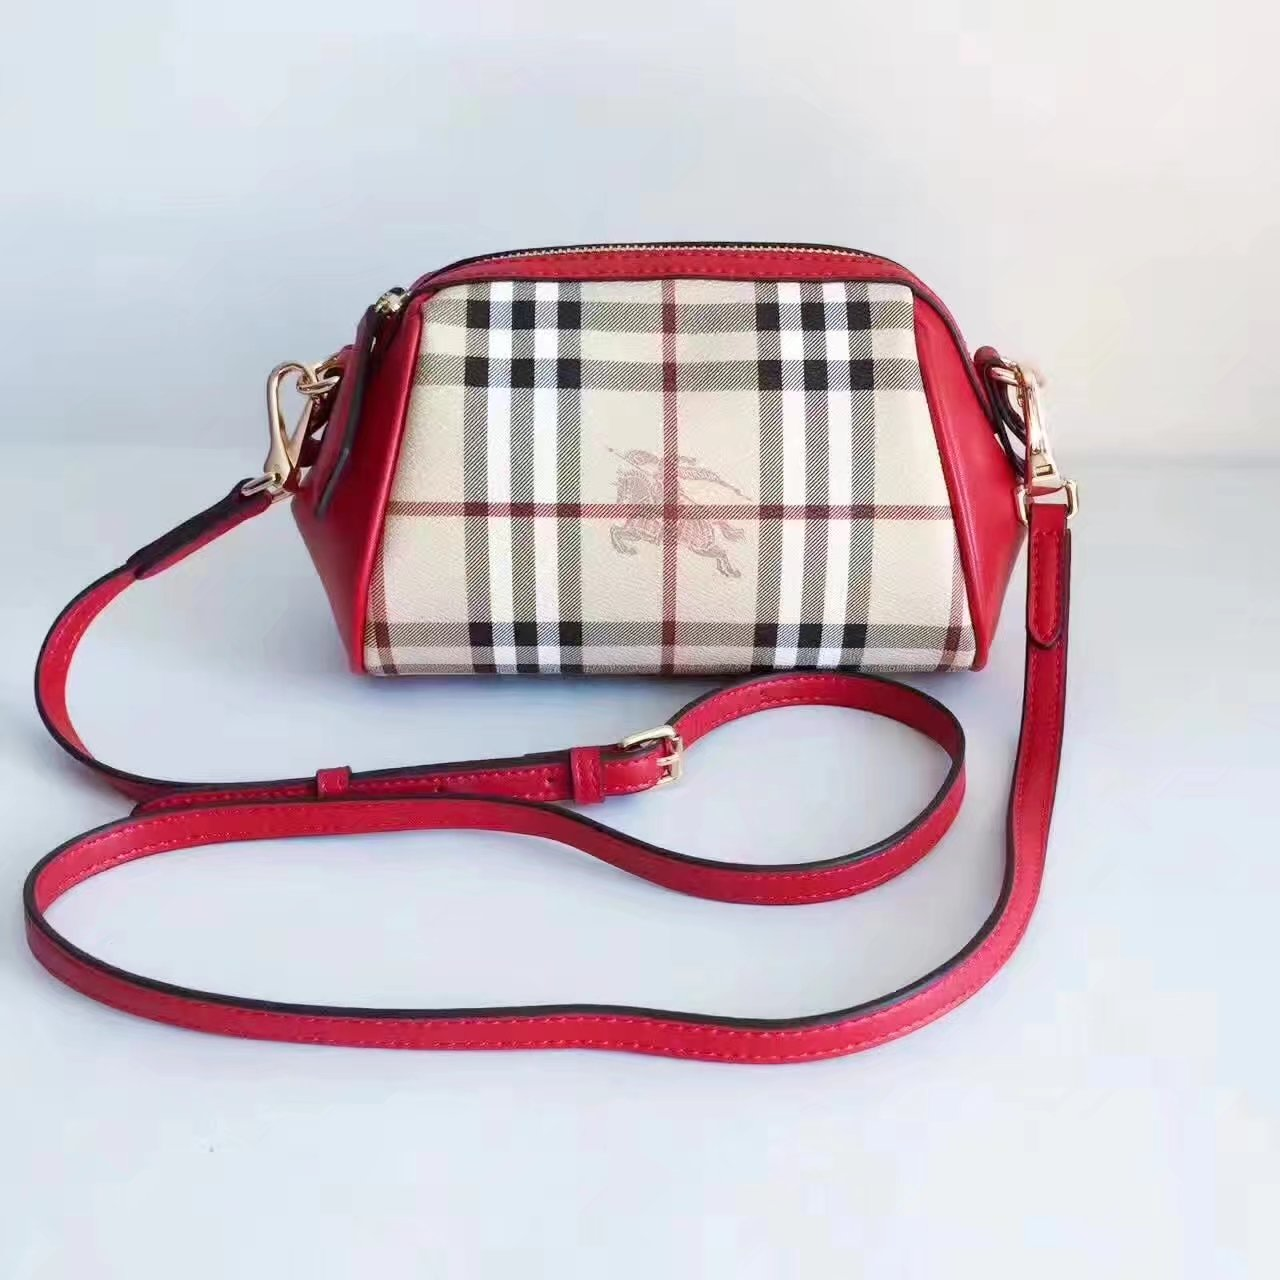 Burberry House Check and Leather Mini Women Shoulder Bag Red